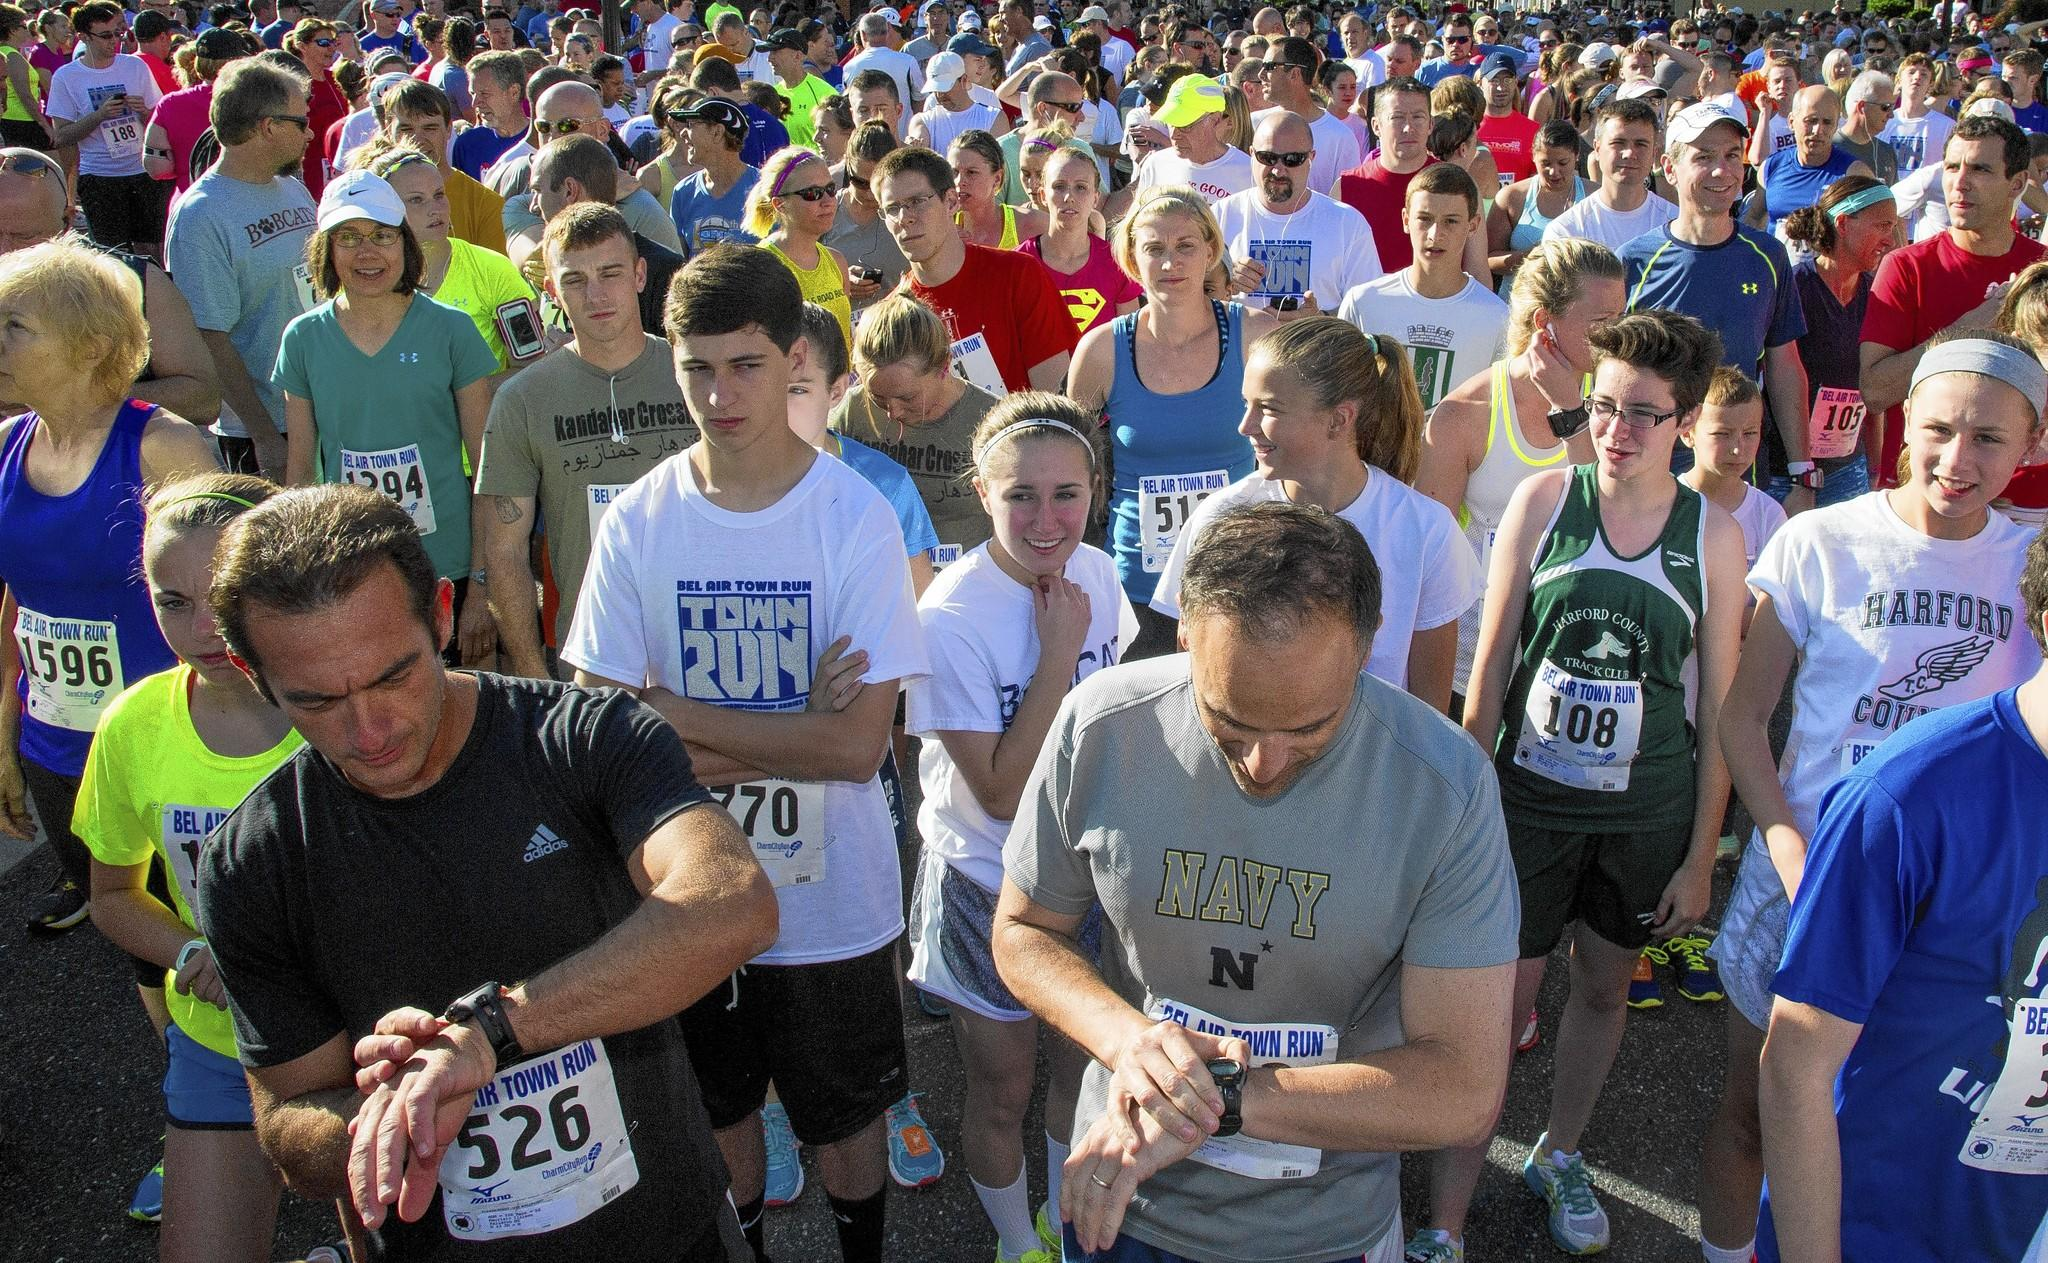 Runners get ready for the start of the Bel Air Town Run in downtown Bel Air Sunday morning.